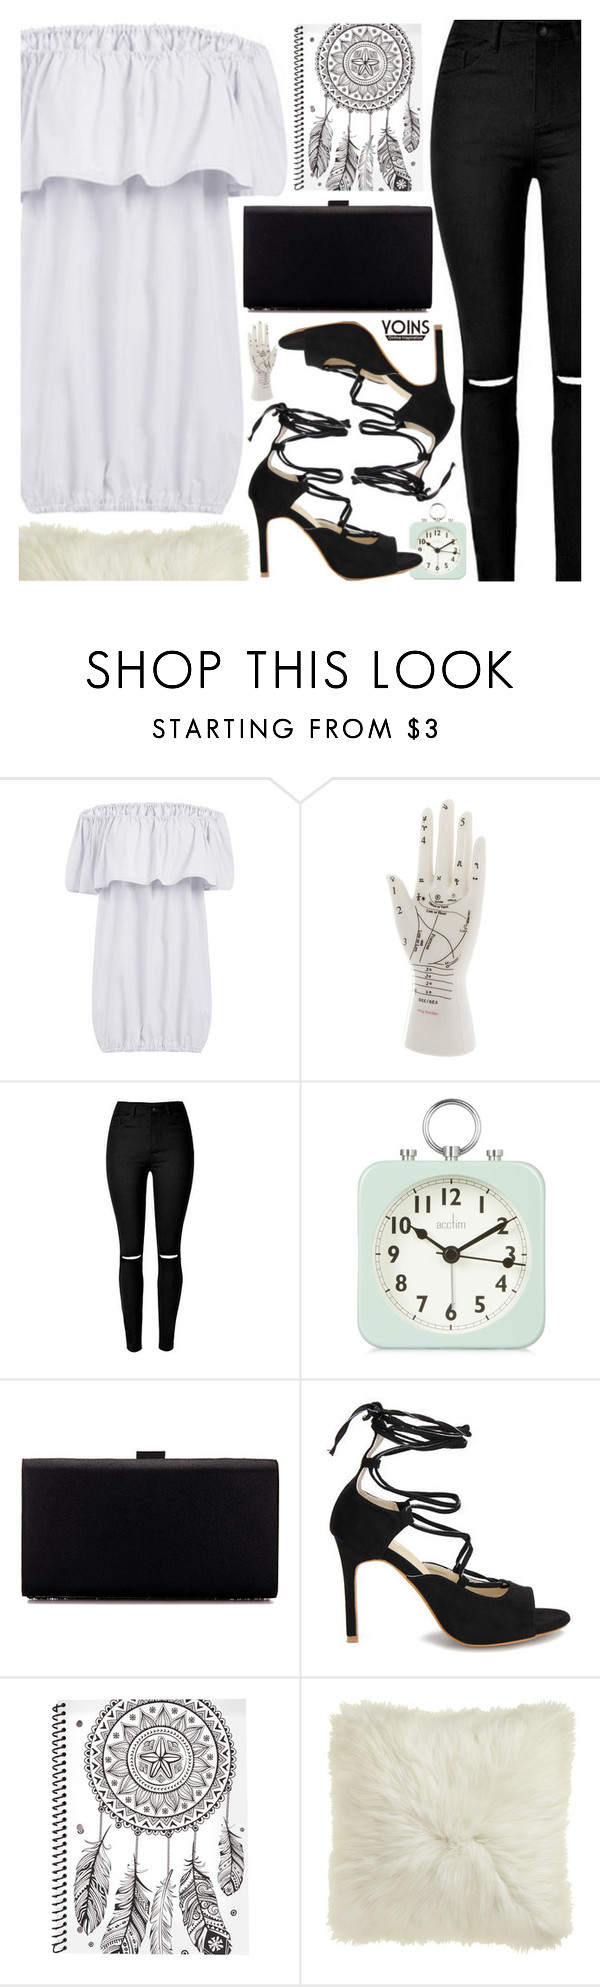 """""""Yoins"""" by pastelneon ❤ liked on Polyvore featuring Acctim"""